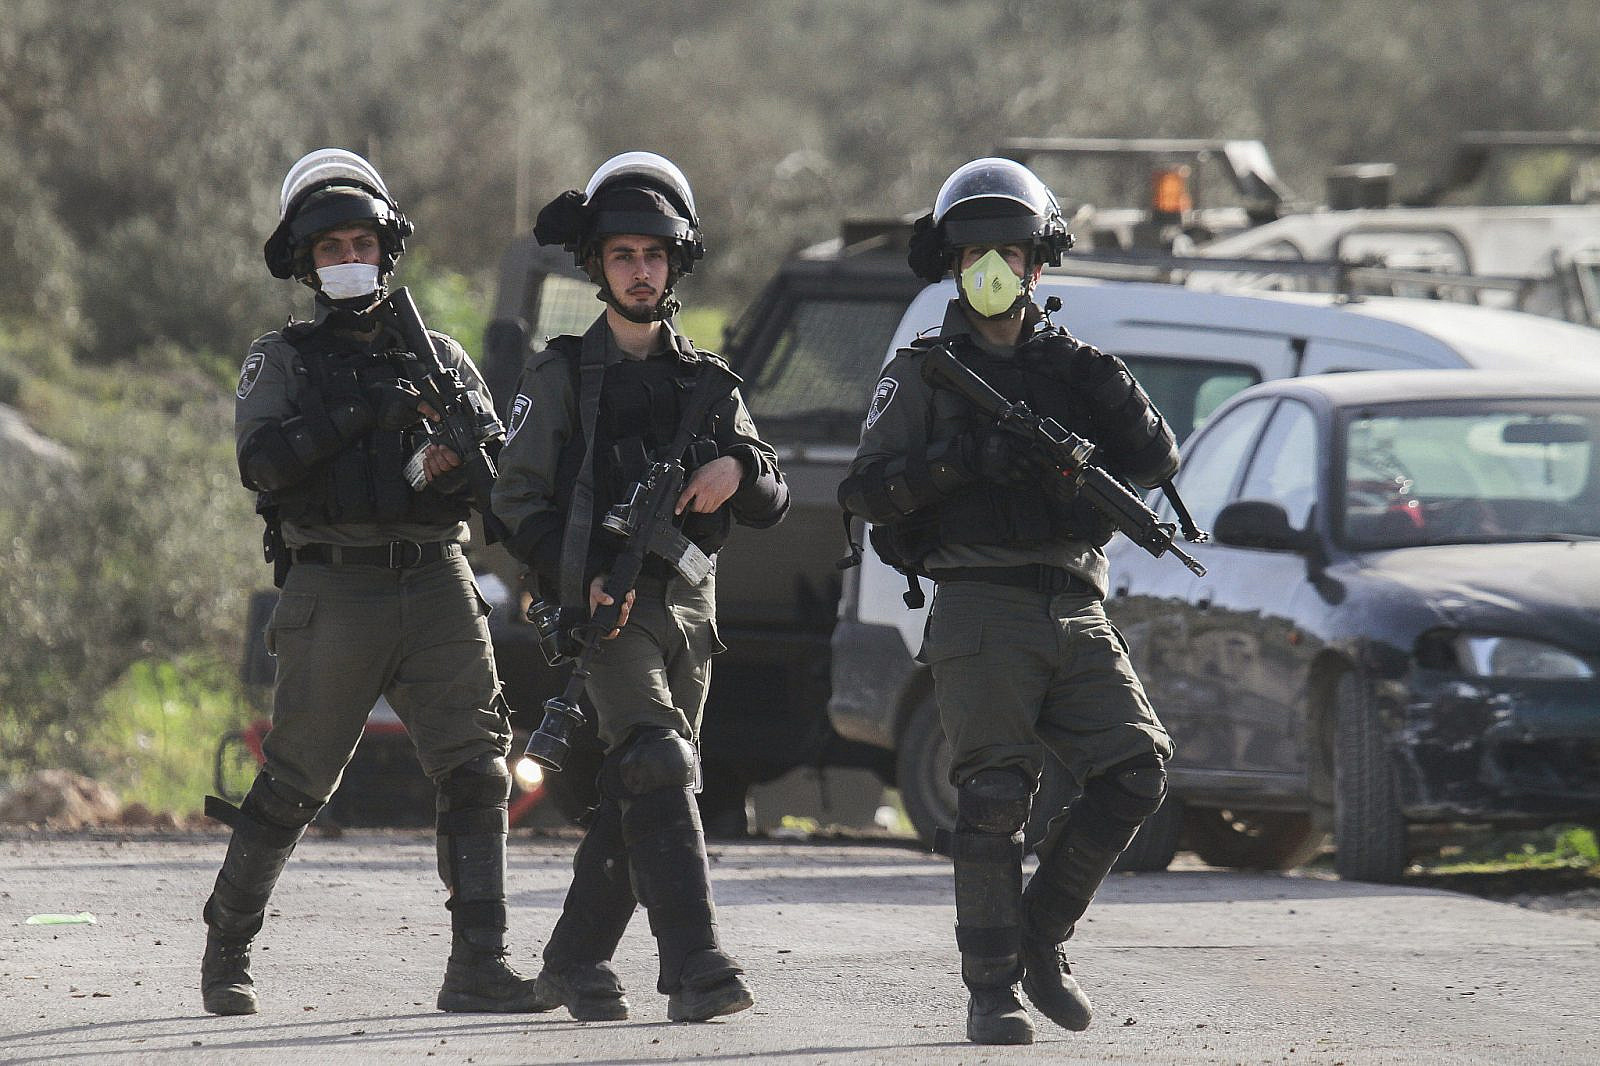 Israeli border police officers wearing face masks during clashes with Palestinian protesters at a protest against the visit of the Jewish settlers in Jabal Al-Arma, near the town of Beita in the West Bank on March 11, 2020. (Nasser Ishtayeh/Flash90)